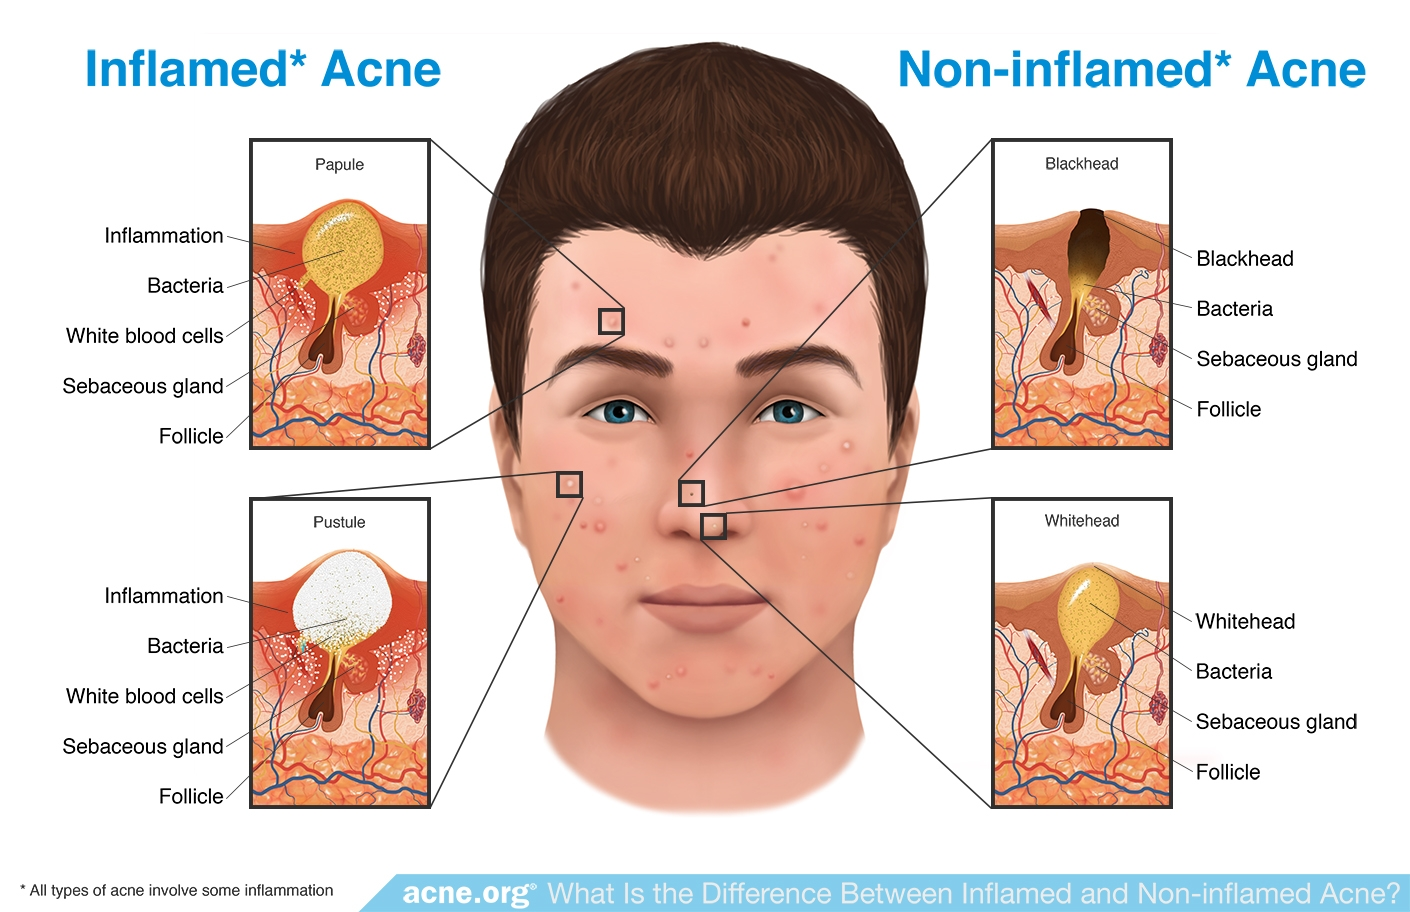 Inflamed Acne vs. Non-inflamed Acne